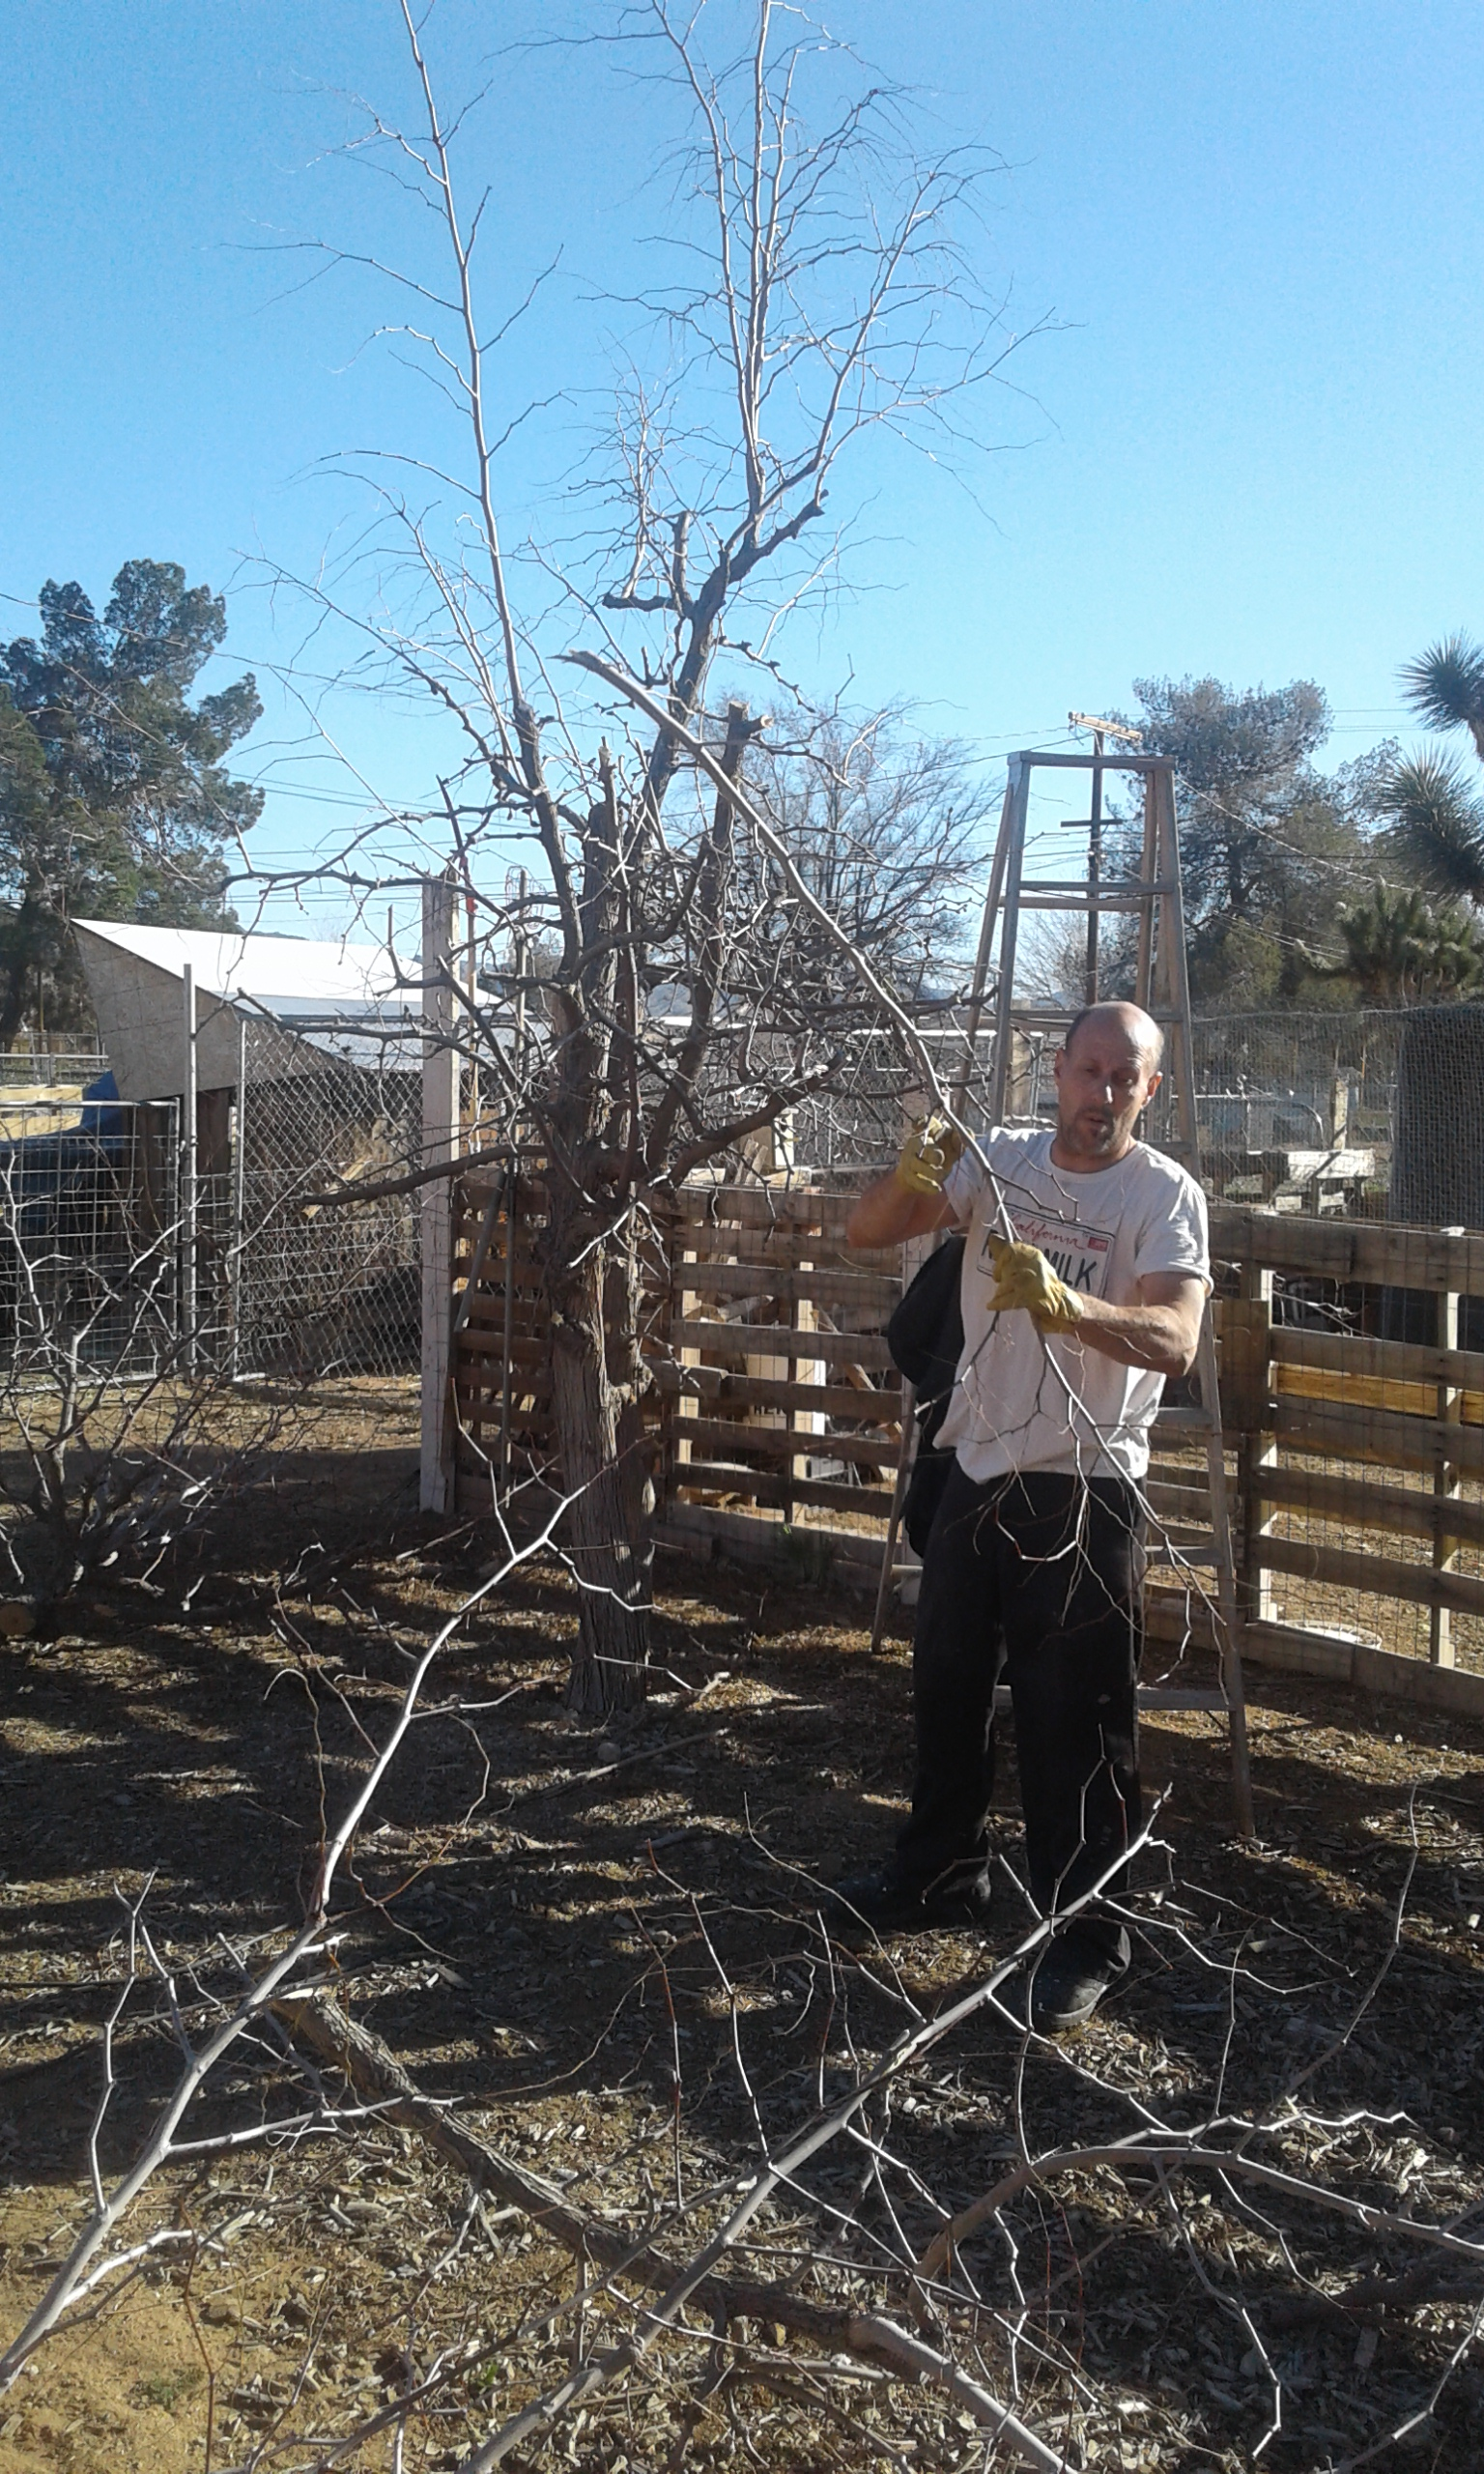 Busy on the homestead preparation day busy on the homestead preparation day - Spring trimming orchard trees healthy ...